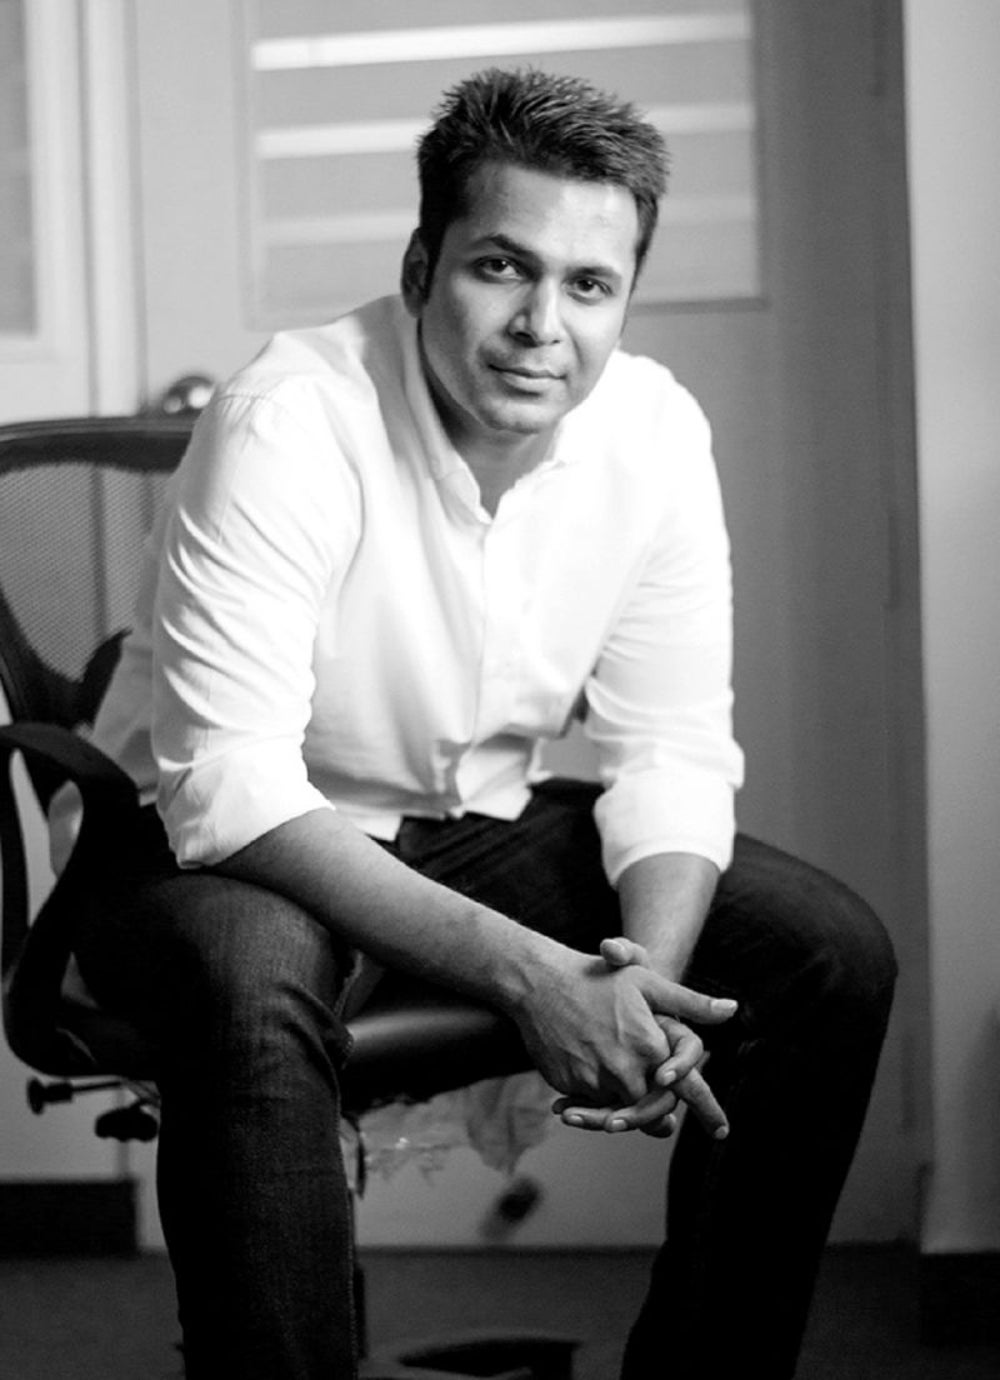 Saahil Goel, CEO and Co-Founder, Kraftly